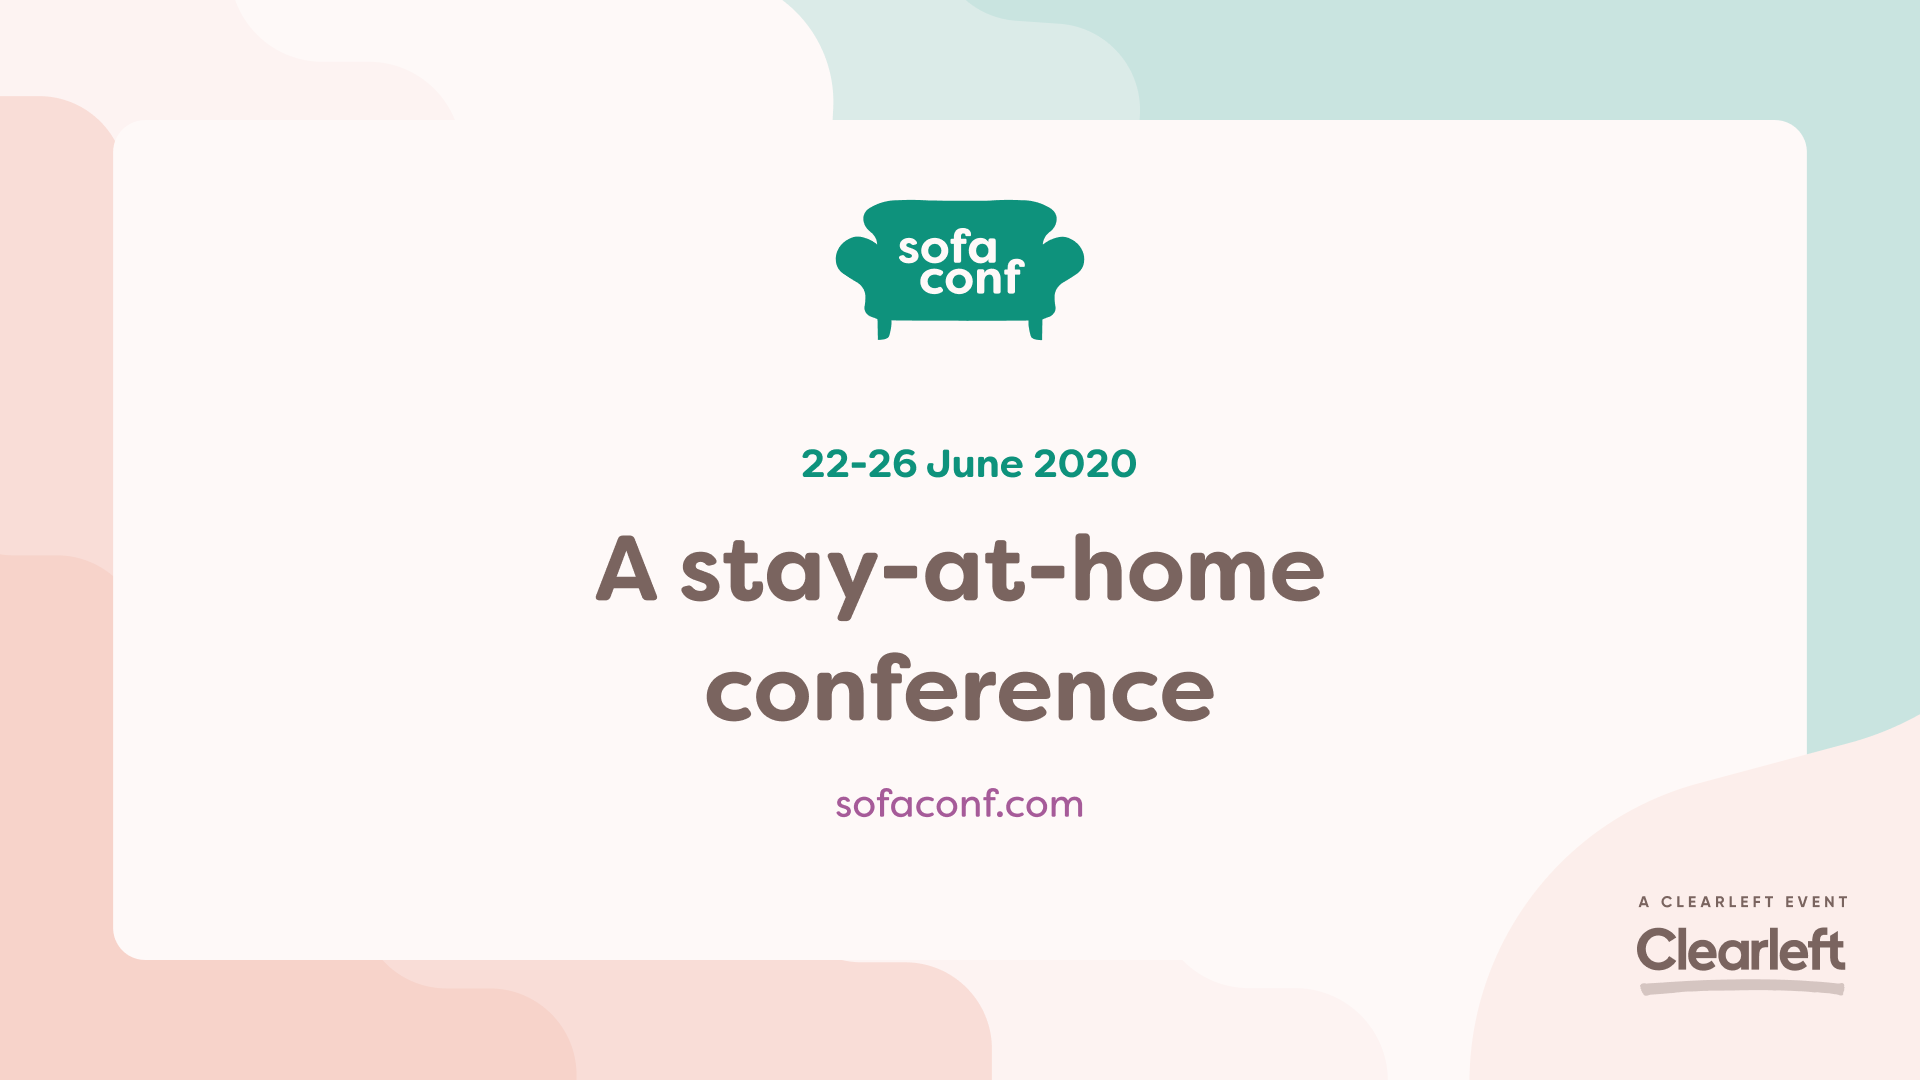 Sofaconf is a stay-at-home conference running from 22 to 26 June. It's run by Clearleft.